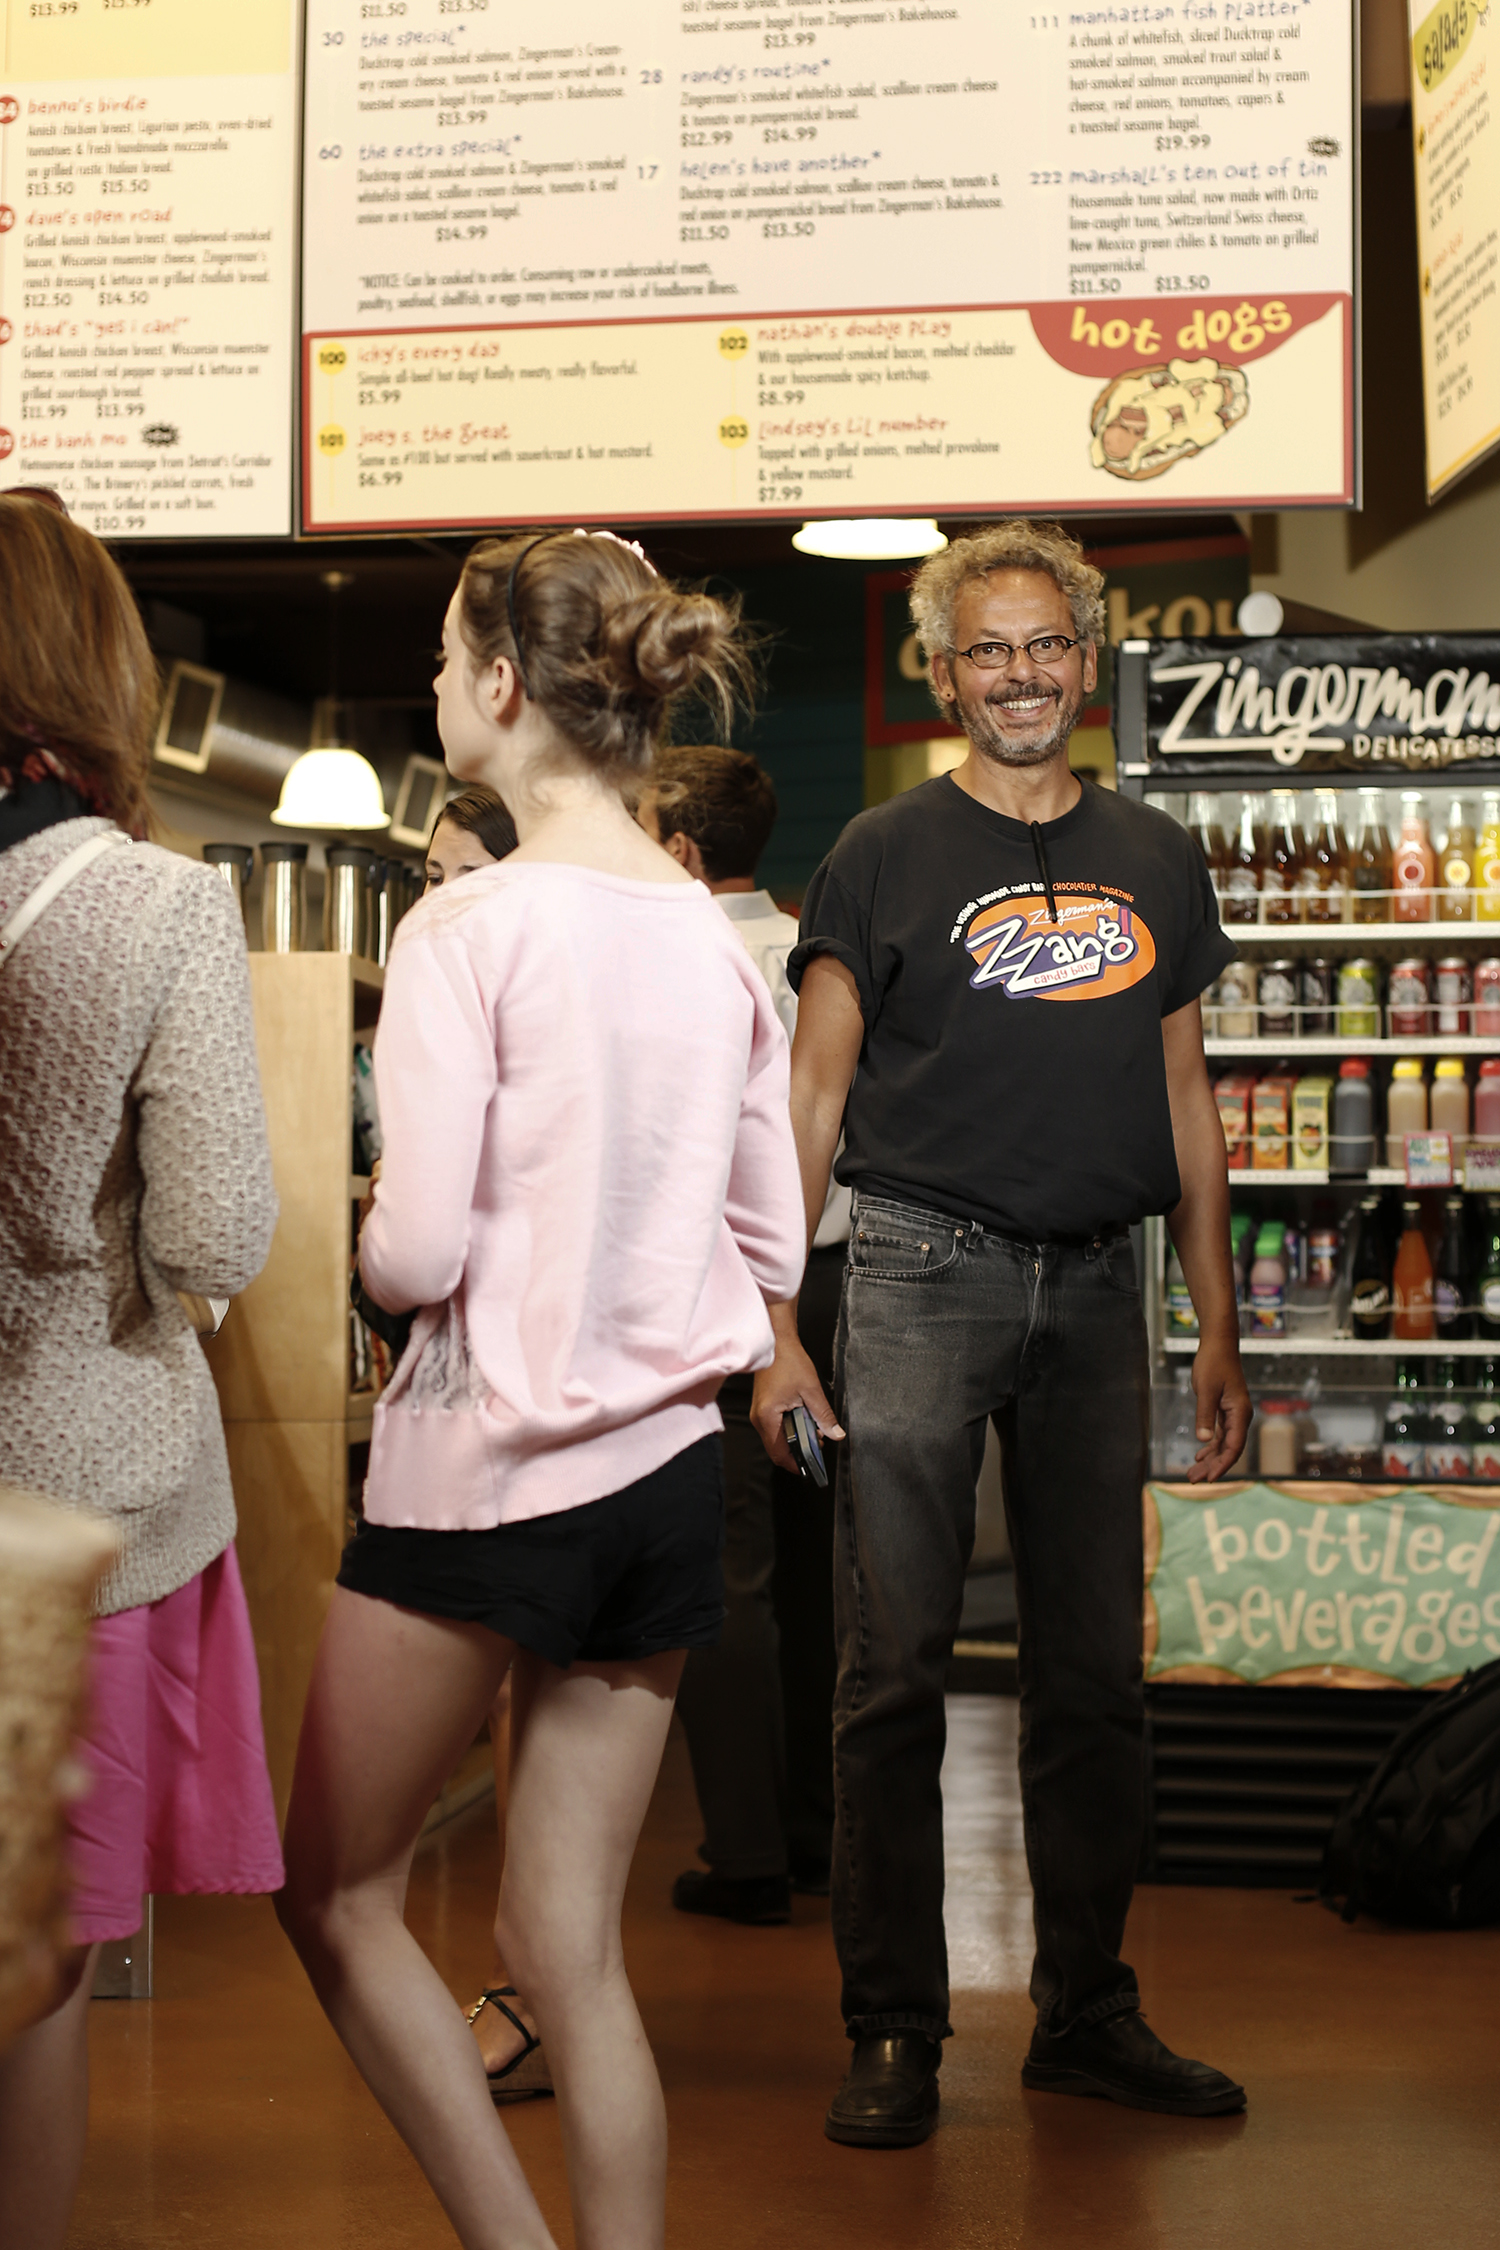 Ari Weinzweig has his portrait taken at Zingerman's Deli on Monday, August 5, 2013 in Ann Arbor, MI.  (Timothy Galloway / for the Chicago Tribune )